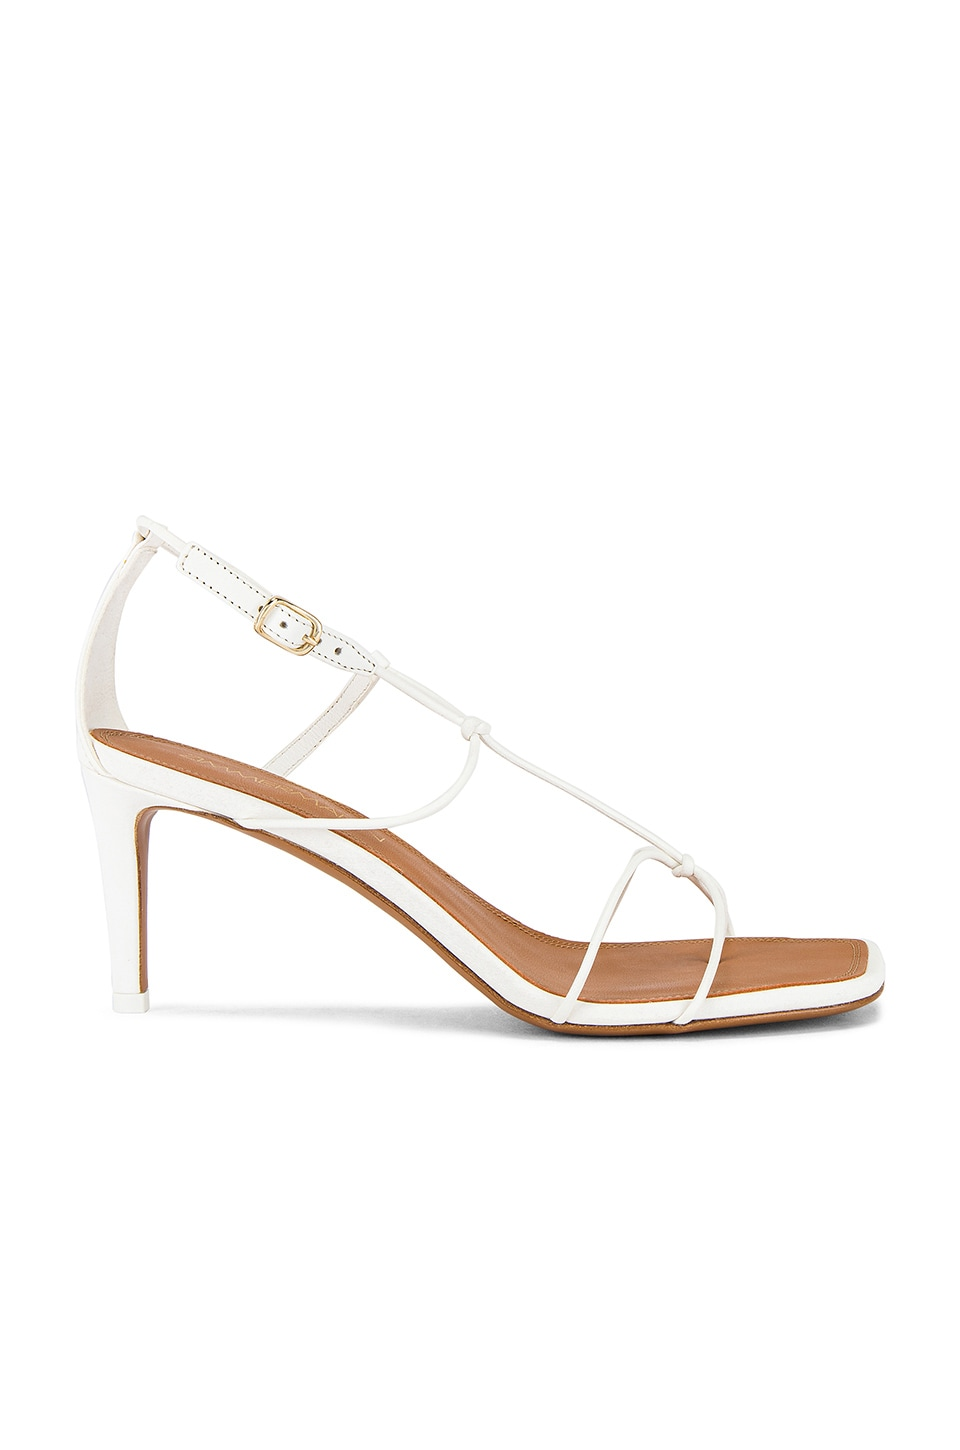 Zimmermann Strappy Heeled Sandal in Off White